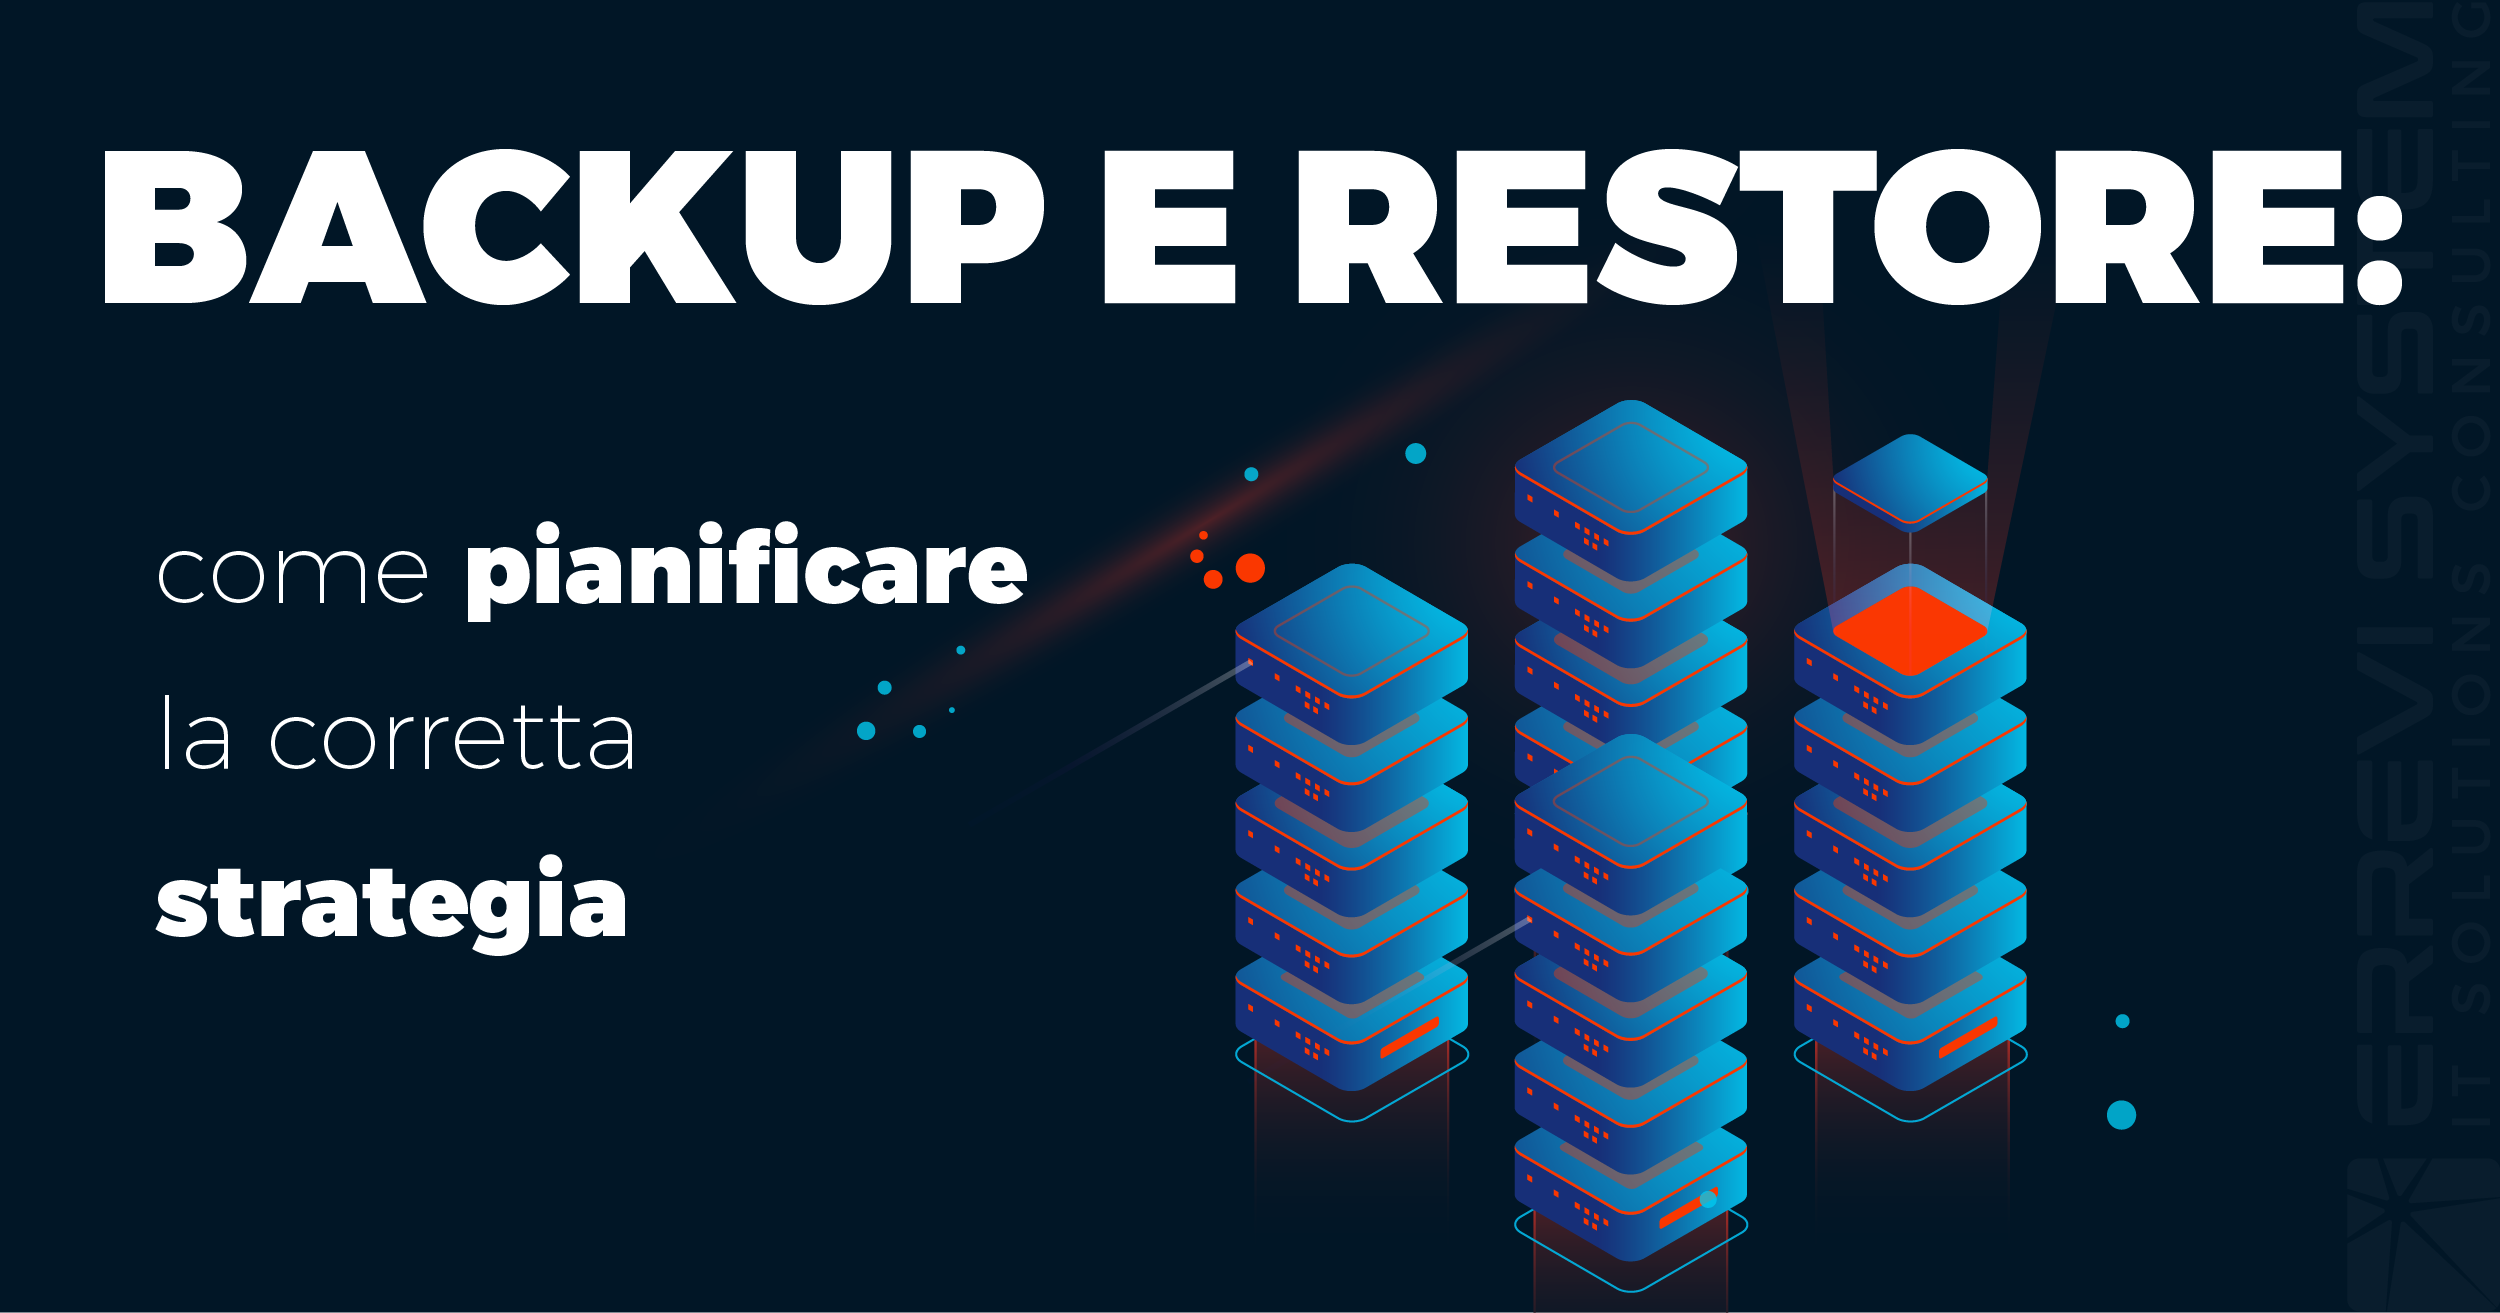 Come pianificare una corretta strategia di backup e restore